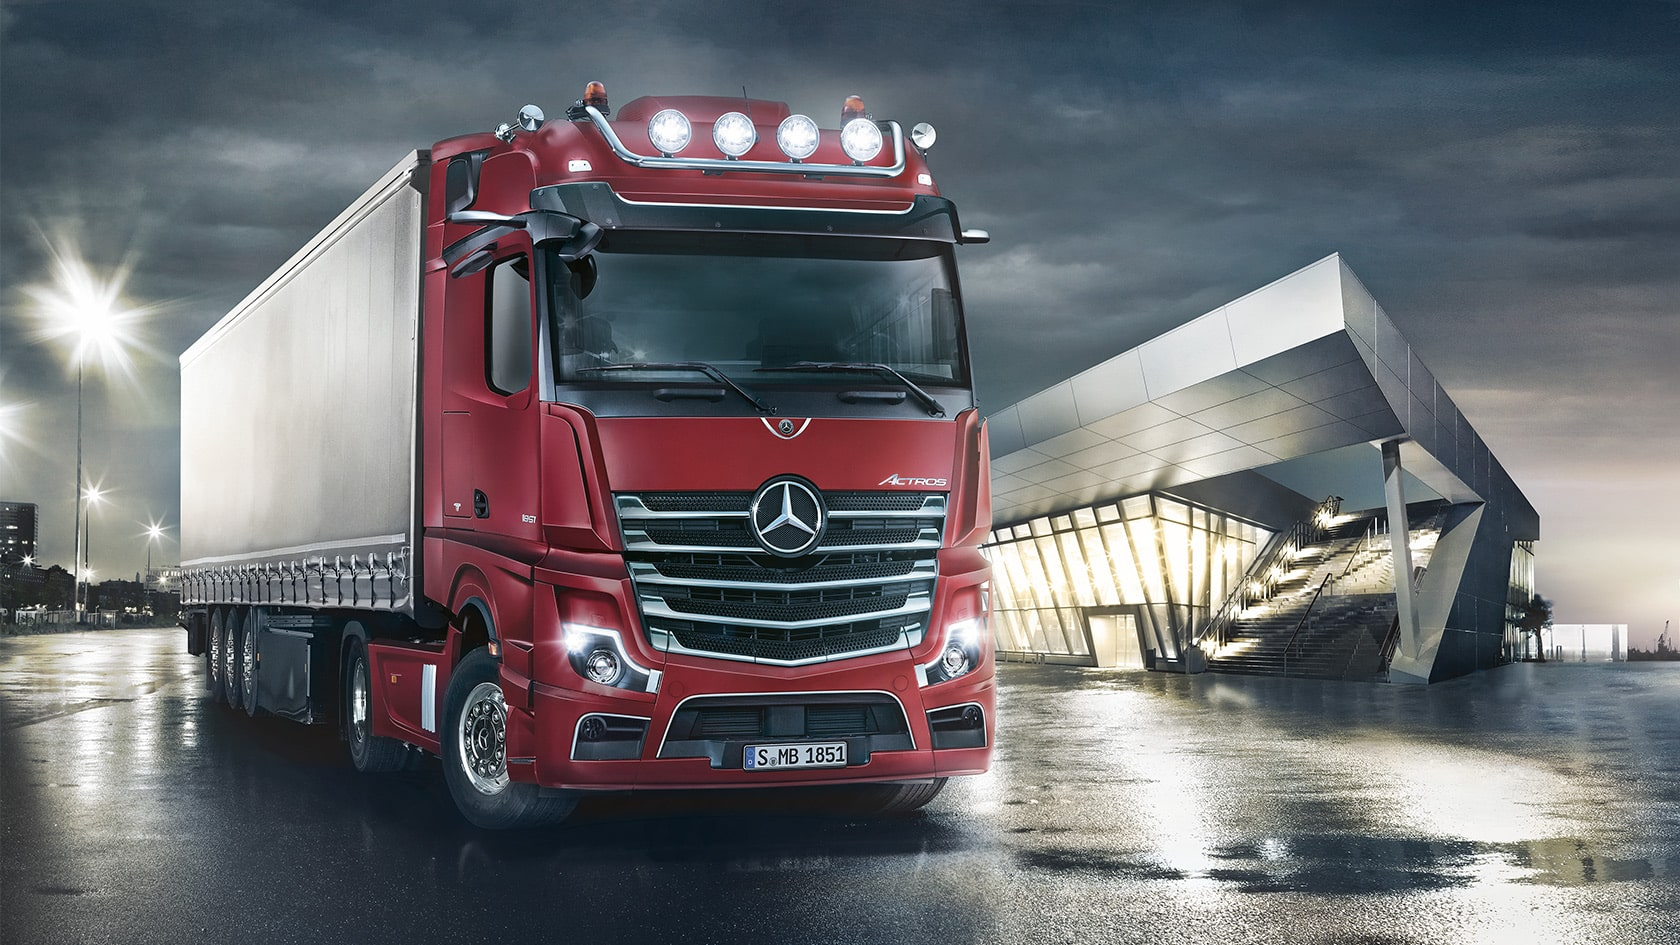 L'ACTROS 5 désigné « Truck of the Year 2020 » - Marokoto